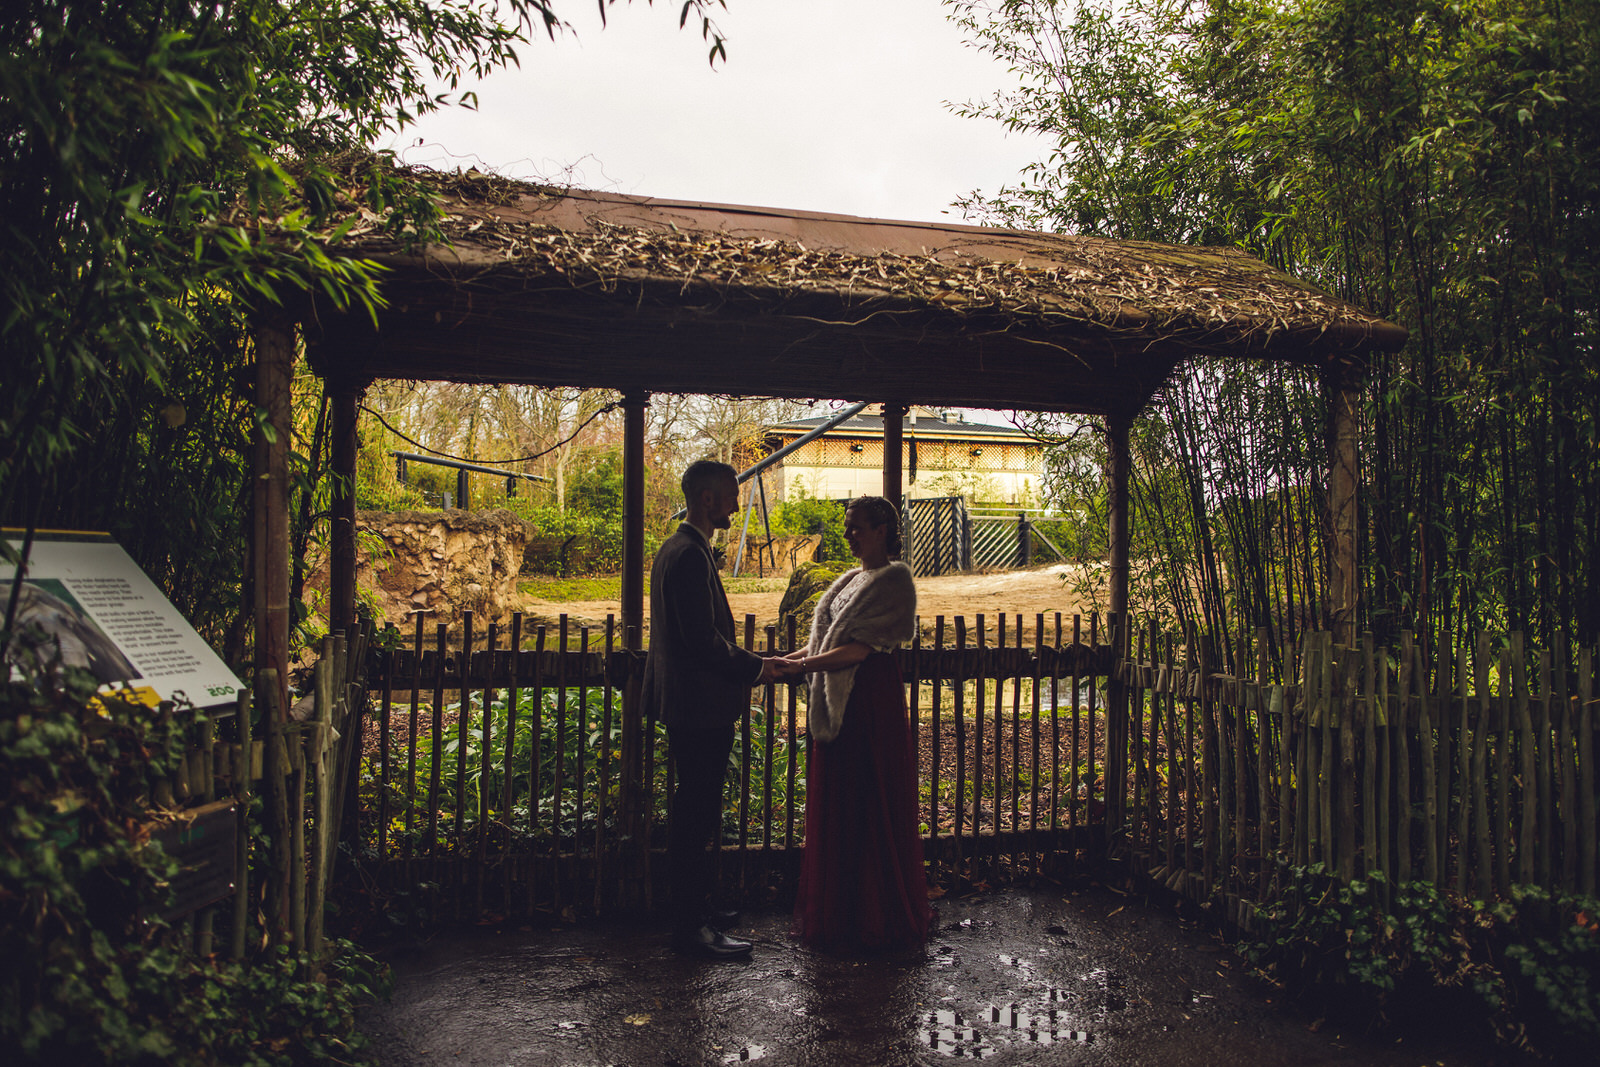 Roger_kenny-wedding-photographer-wicklow-dublin-zoo_057.jpg